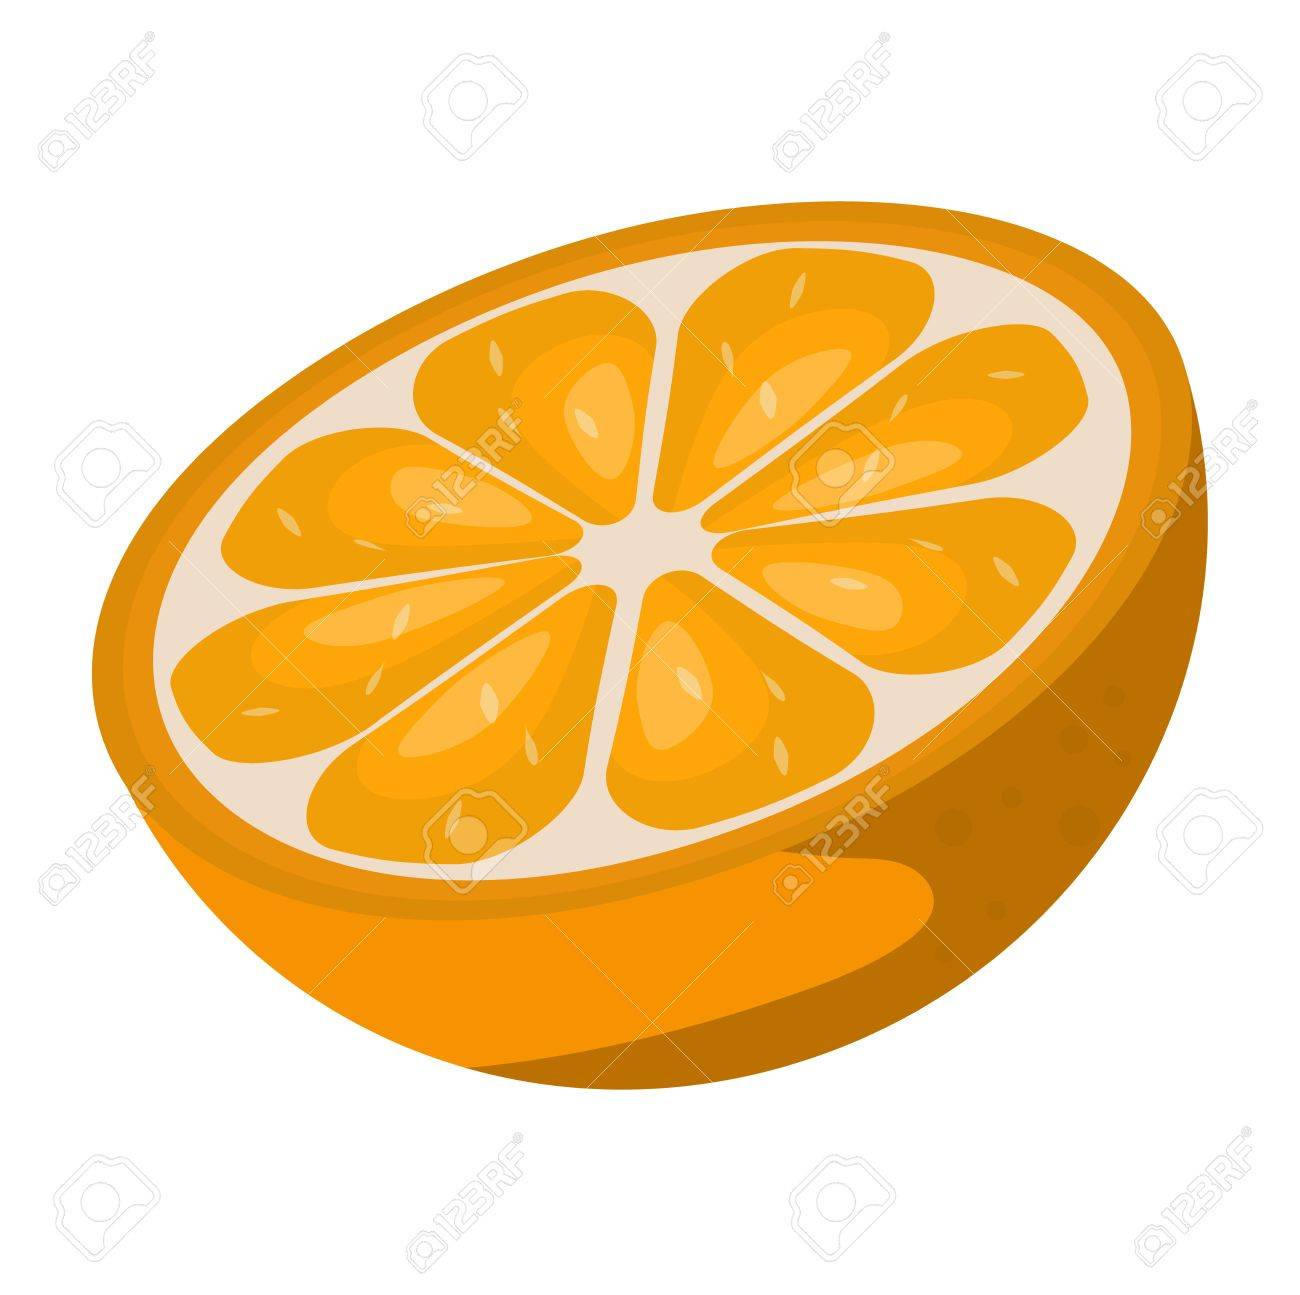 slice of fresh orange isolated on white background fruit orange rh 123rf com orange vector background hd orange vector control